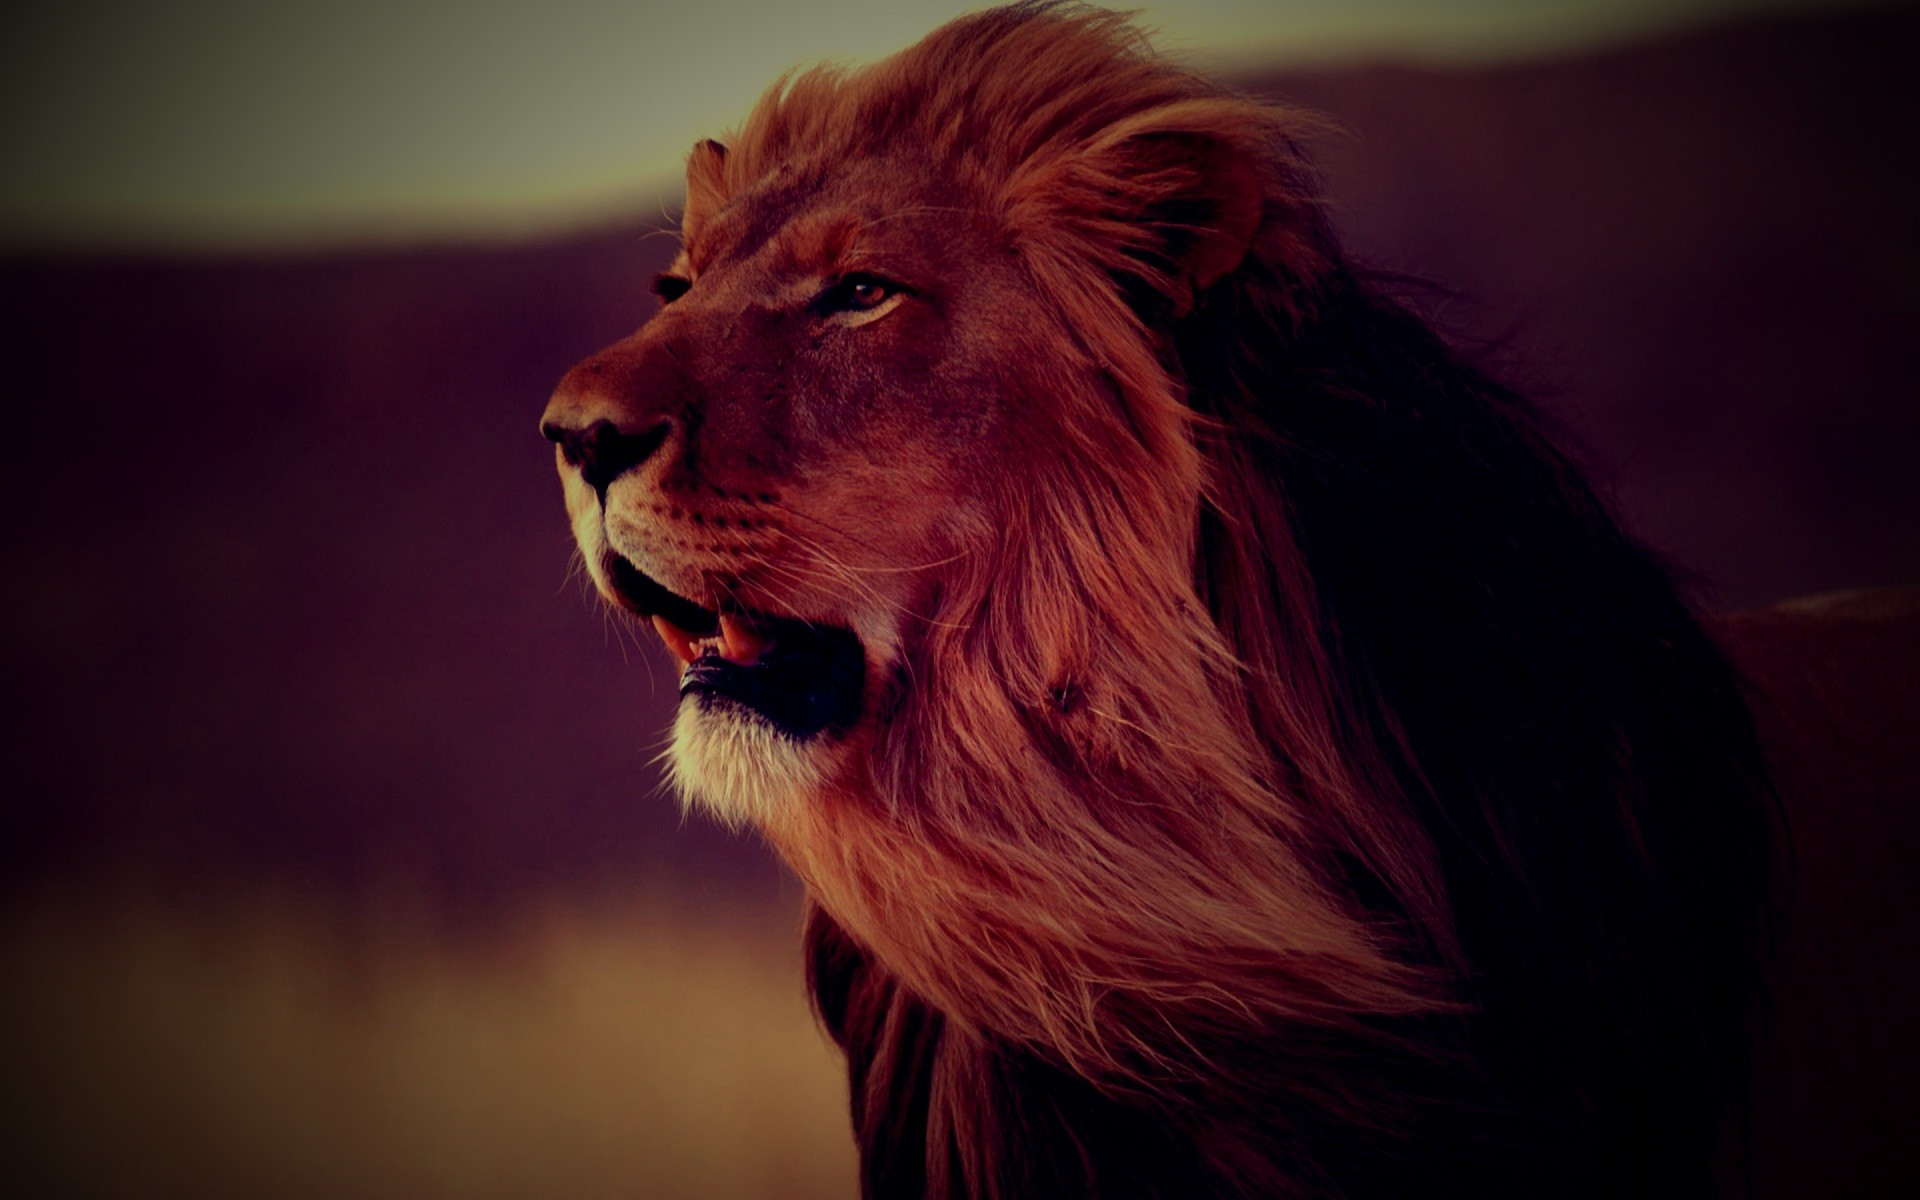 Res: 1920x1200, Lion face evening roaring full HD wide wallpapers